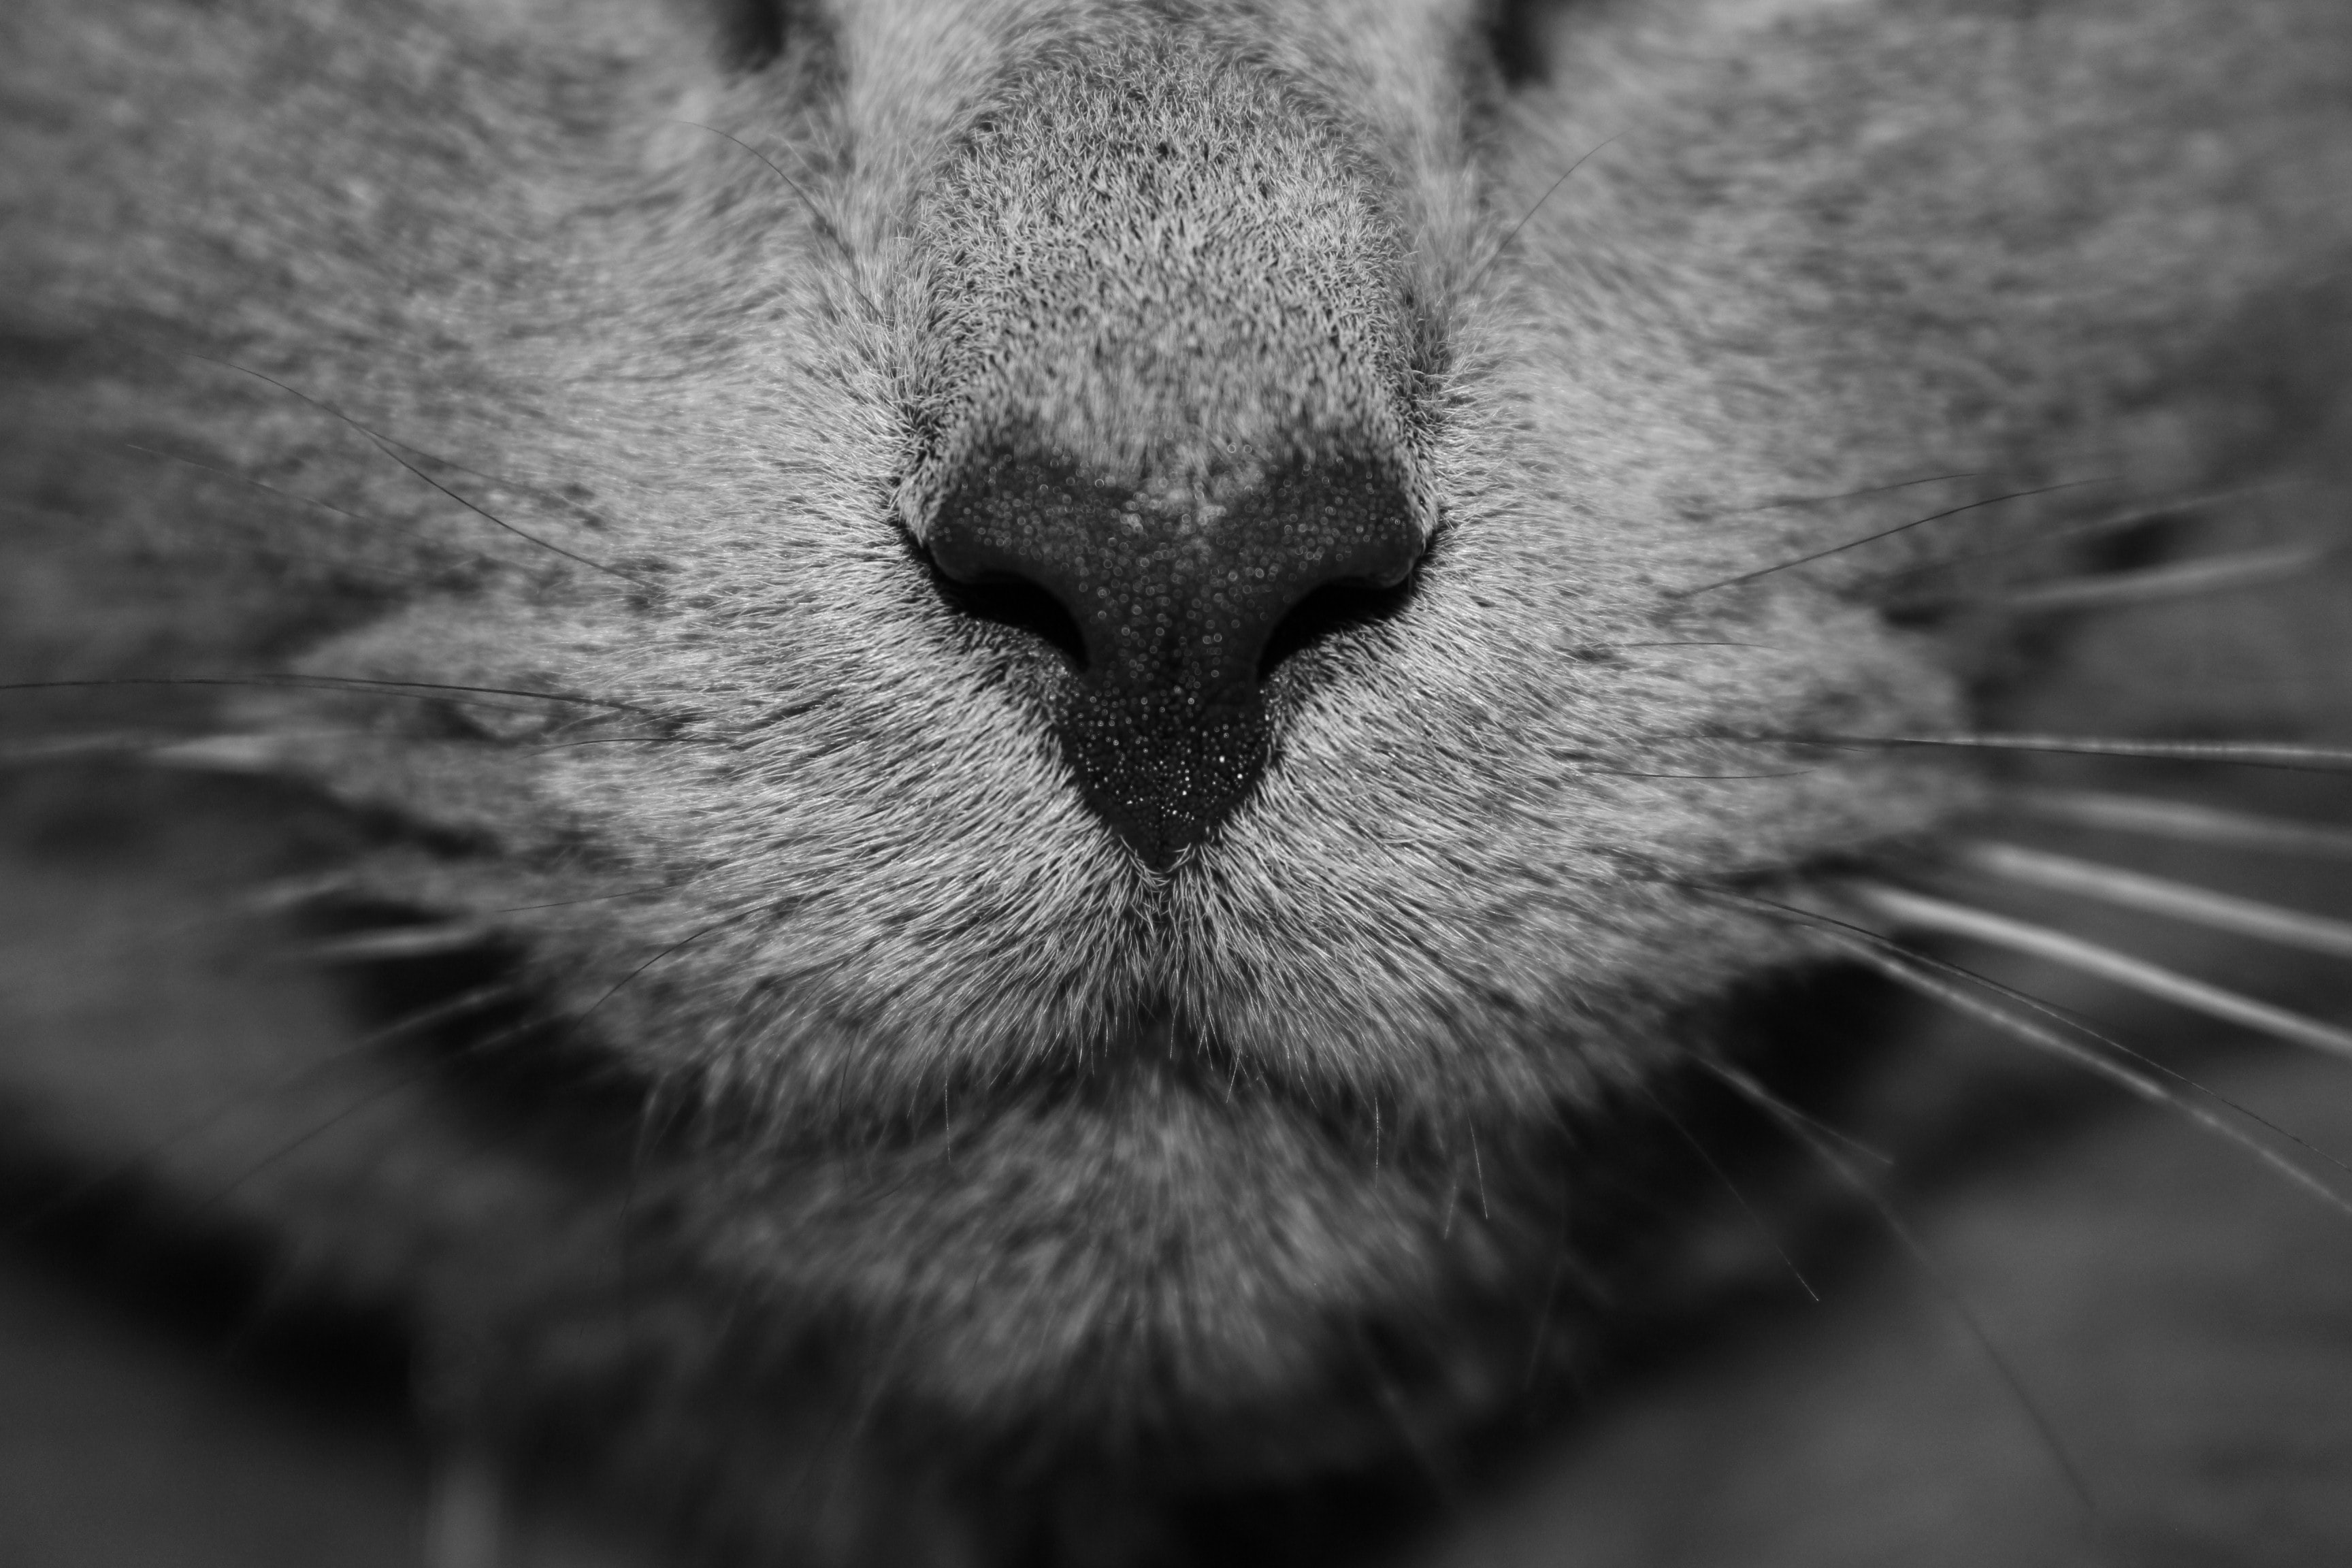 A black-and-white macro shot of a cat's nose